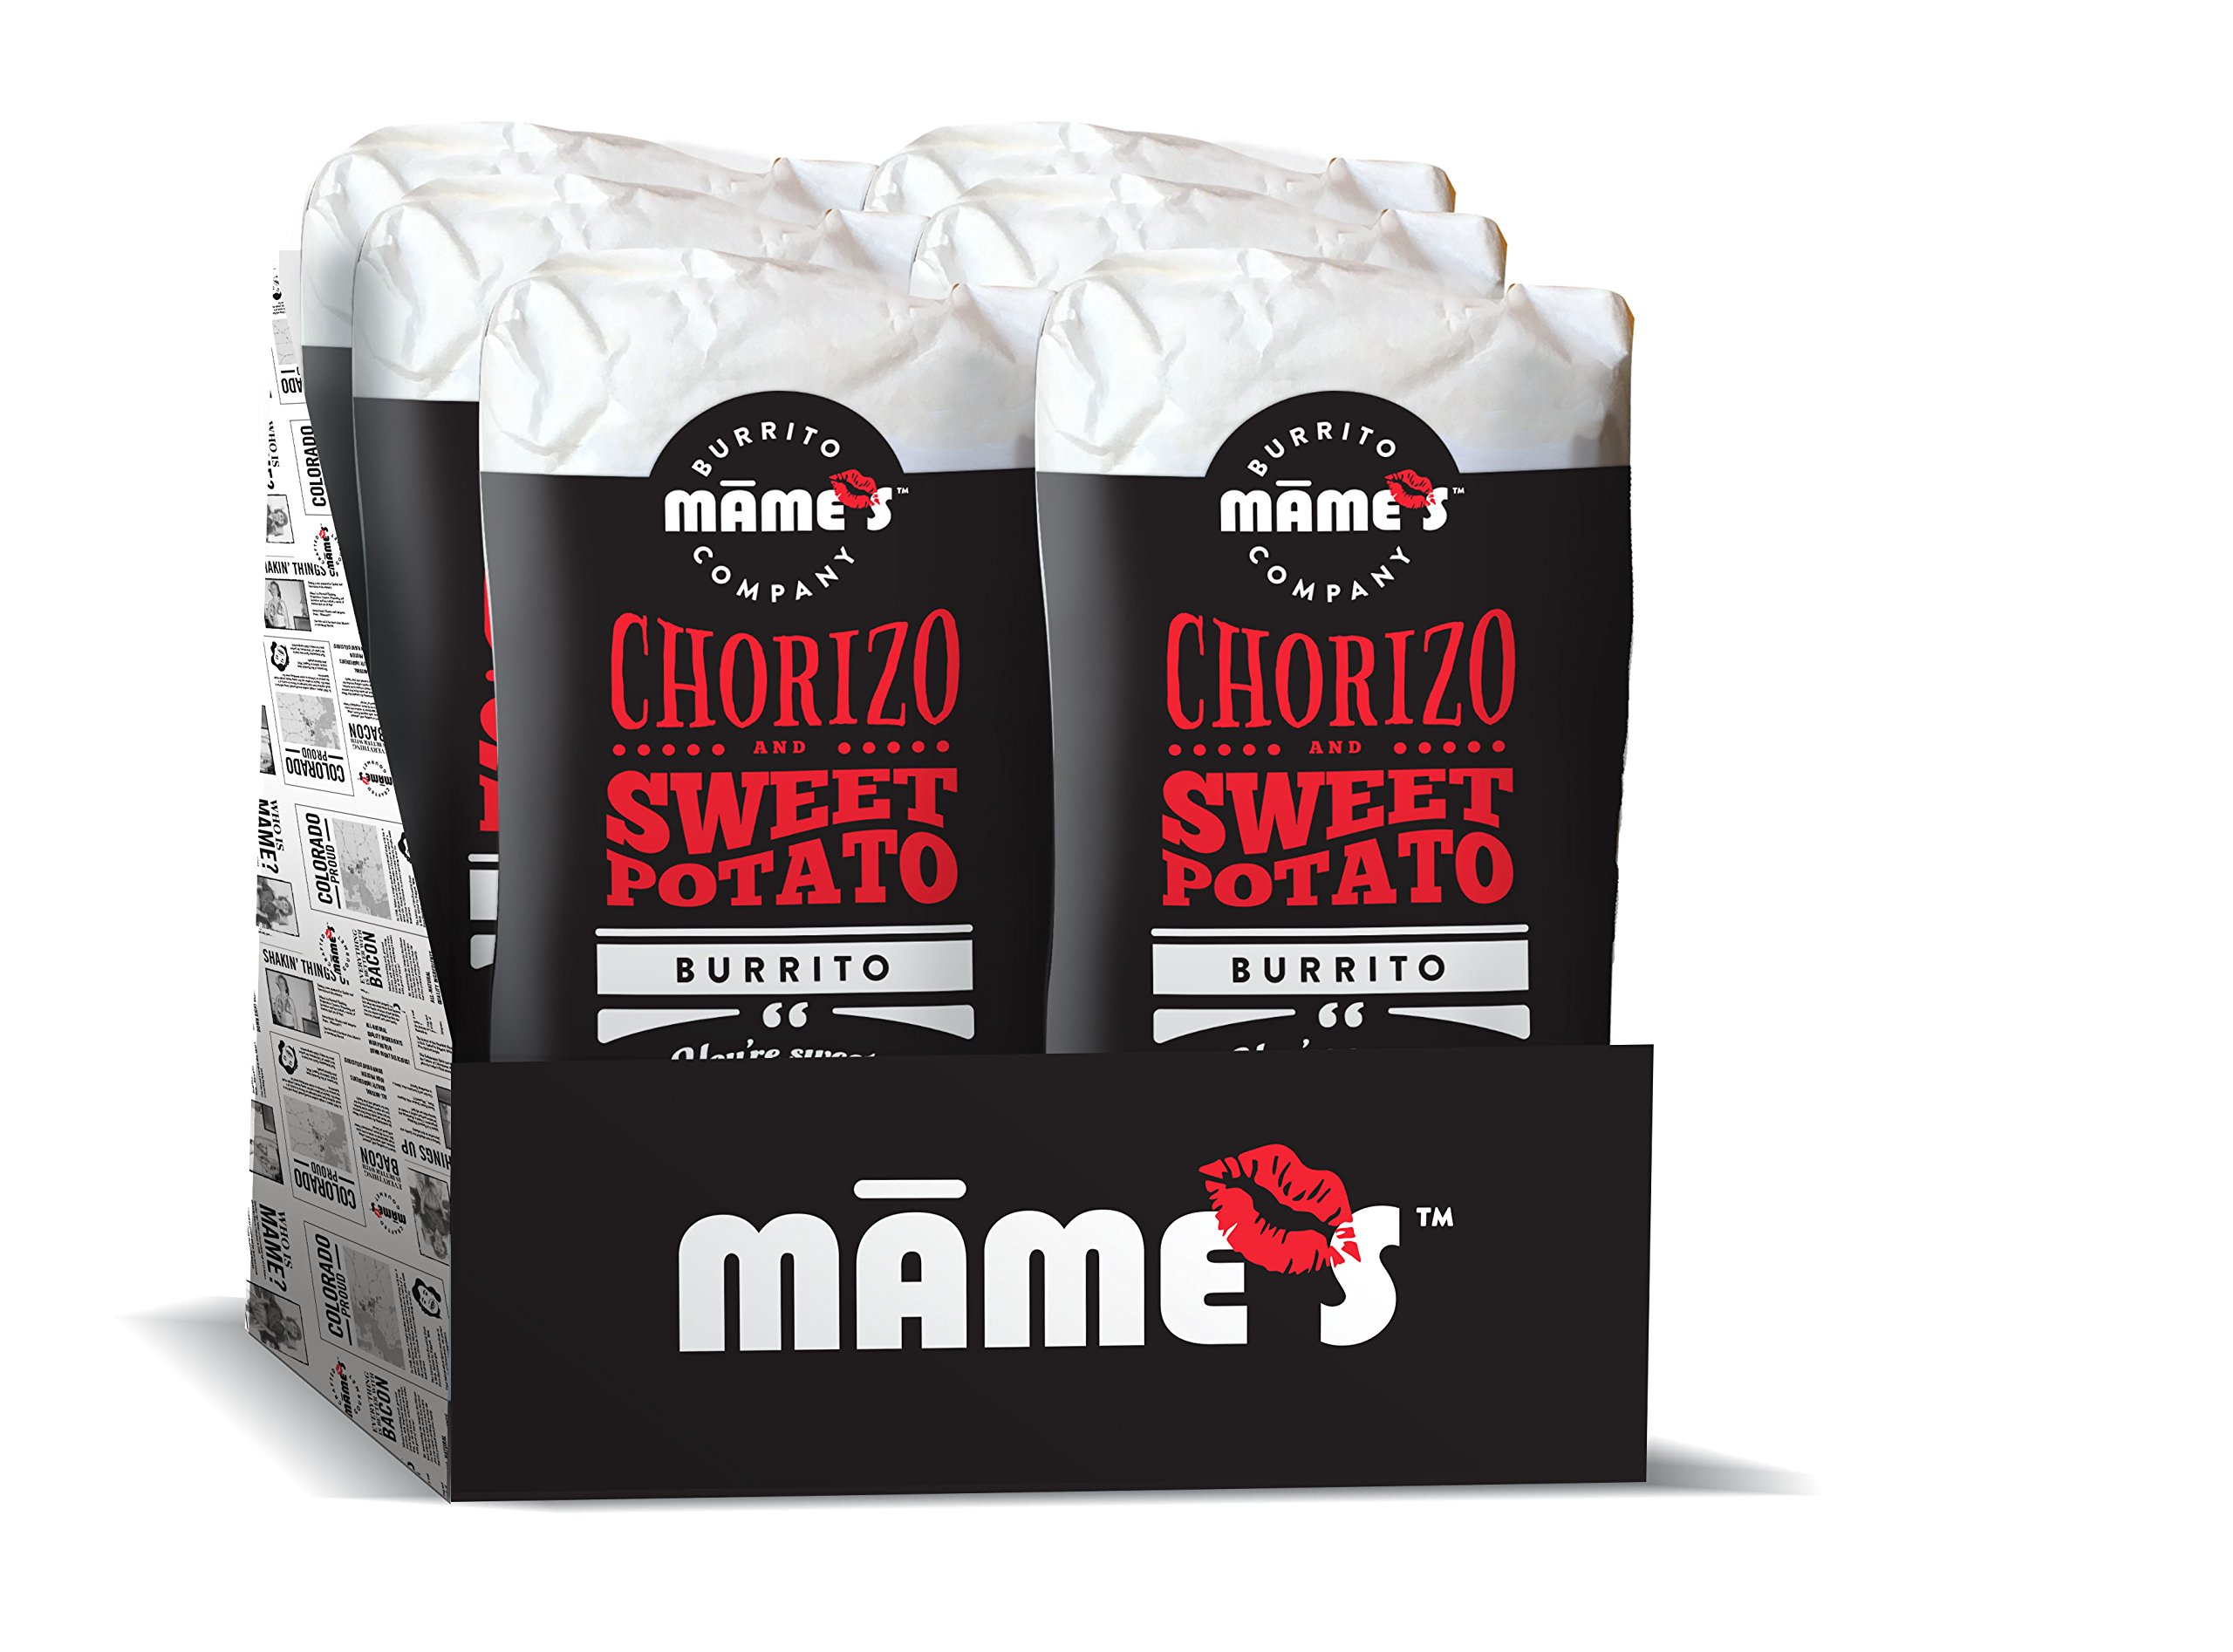 Mame's Burrito Company Sweet Potato Chorizo, 7 Ounce (Pack of 12) by Mame's Burrito Company